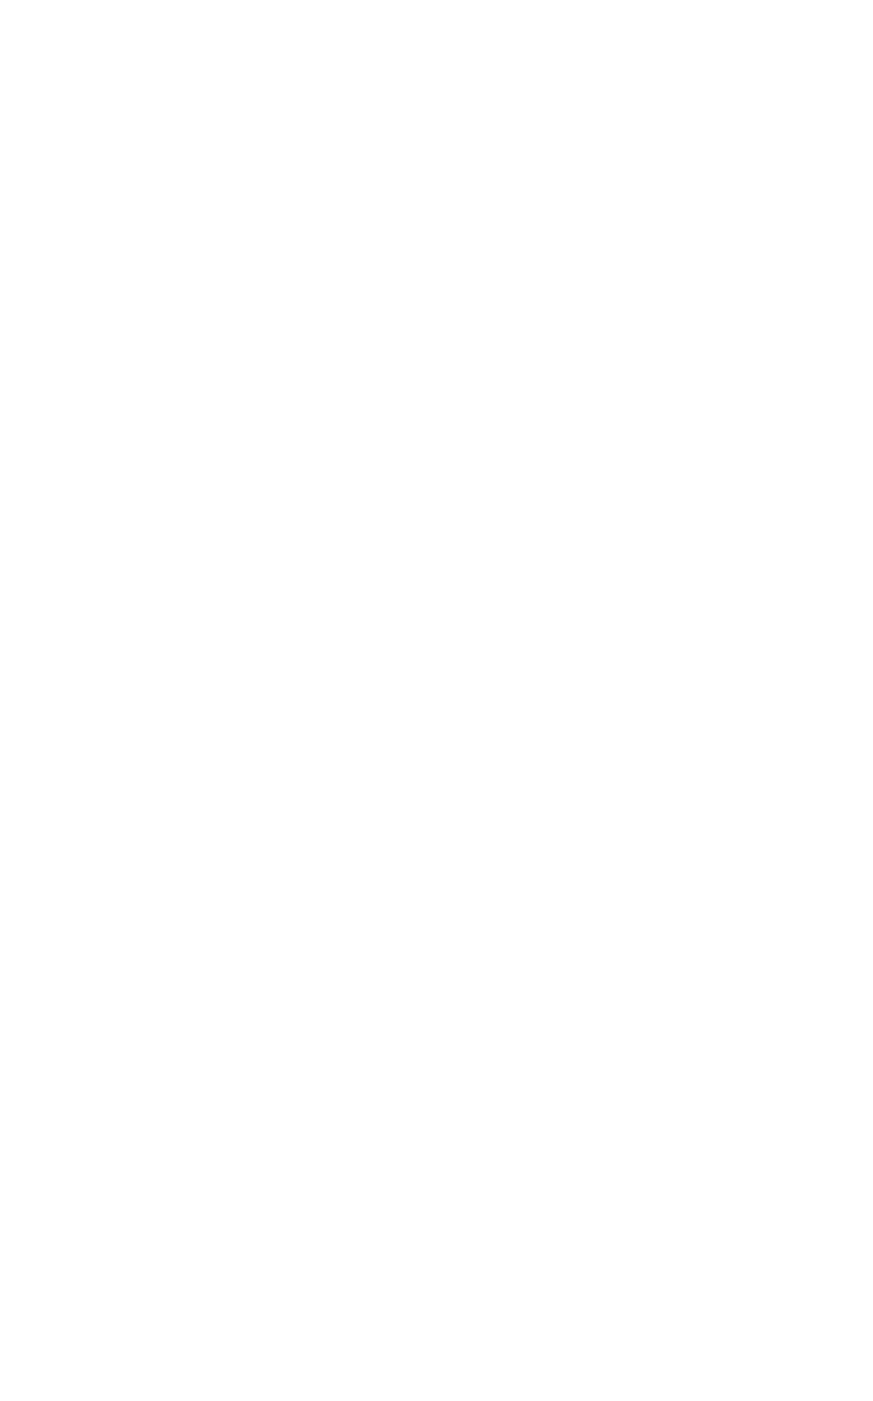 Surfrider Foundation, Outer Banks Chapter